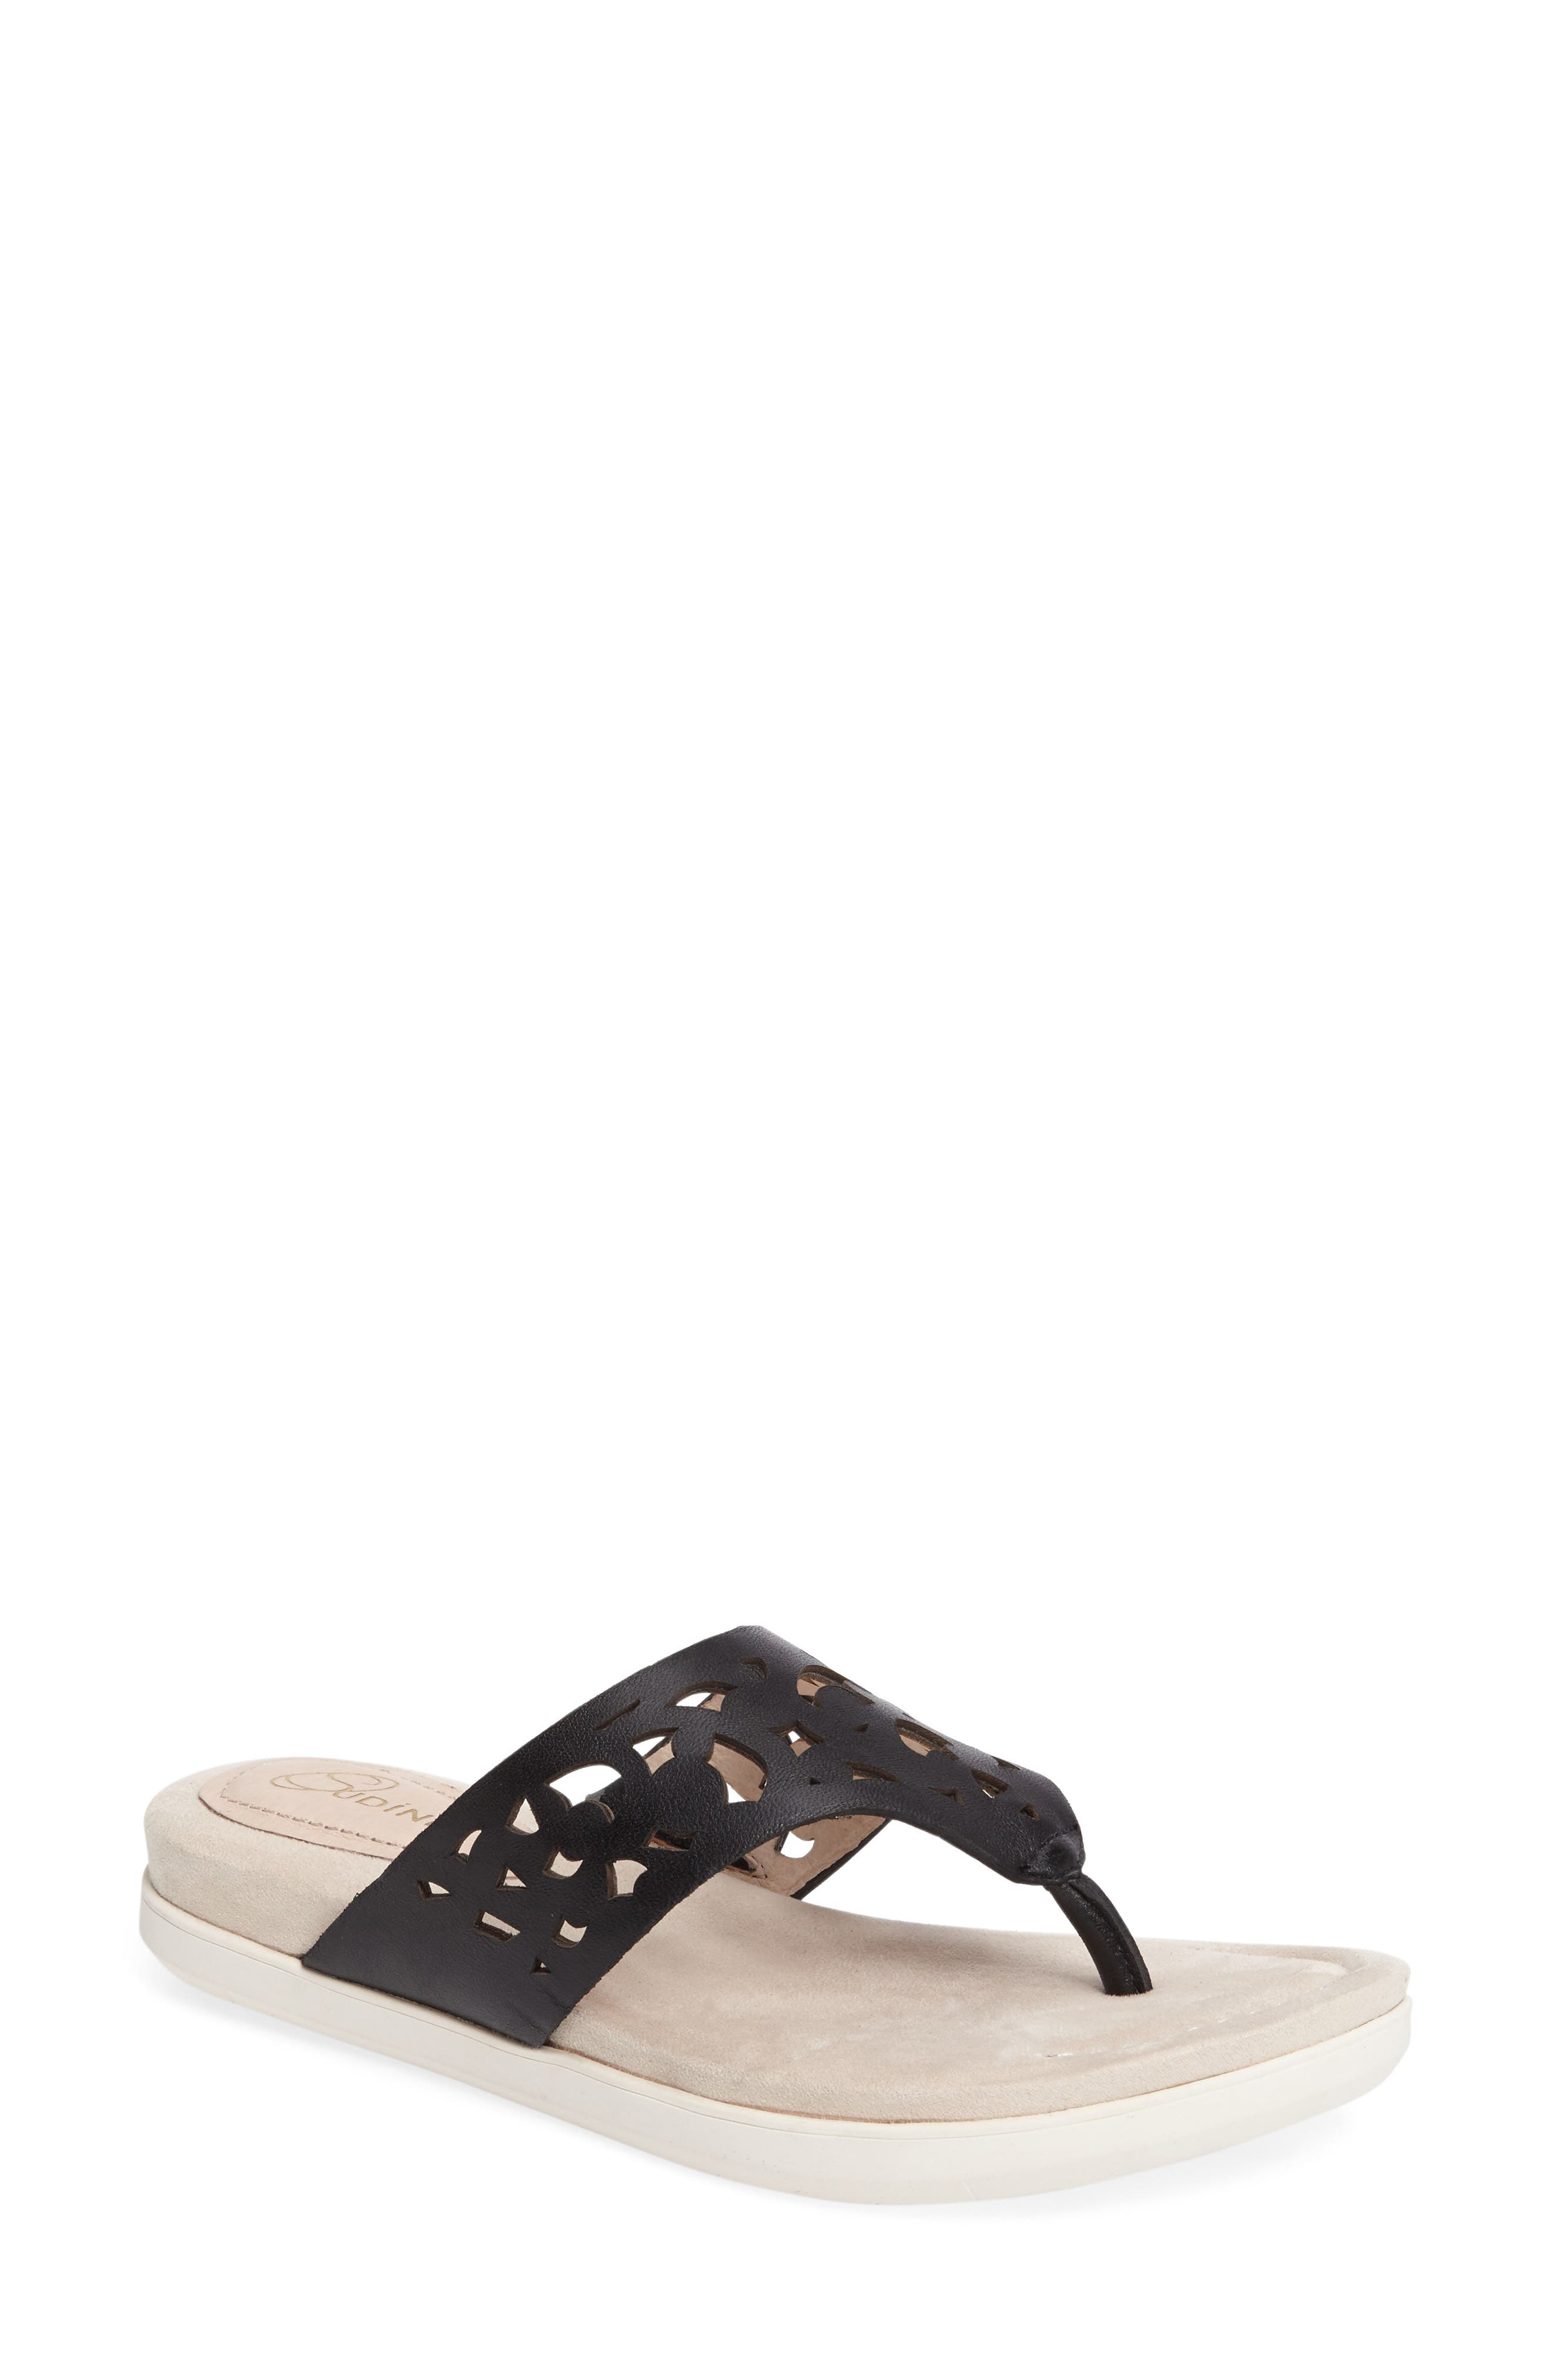 Main Image - Sudini Sally Perforated Flip Flop (Women)